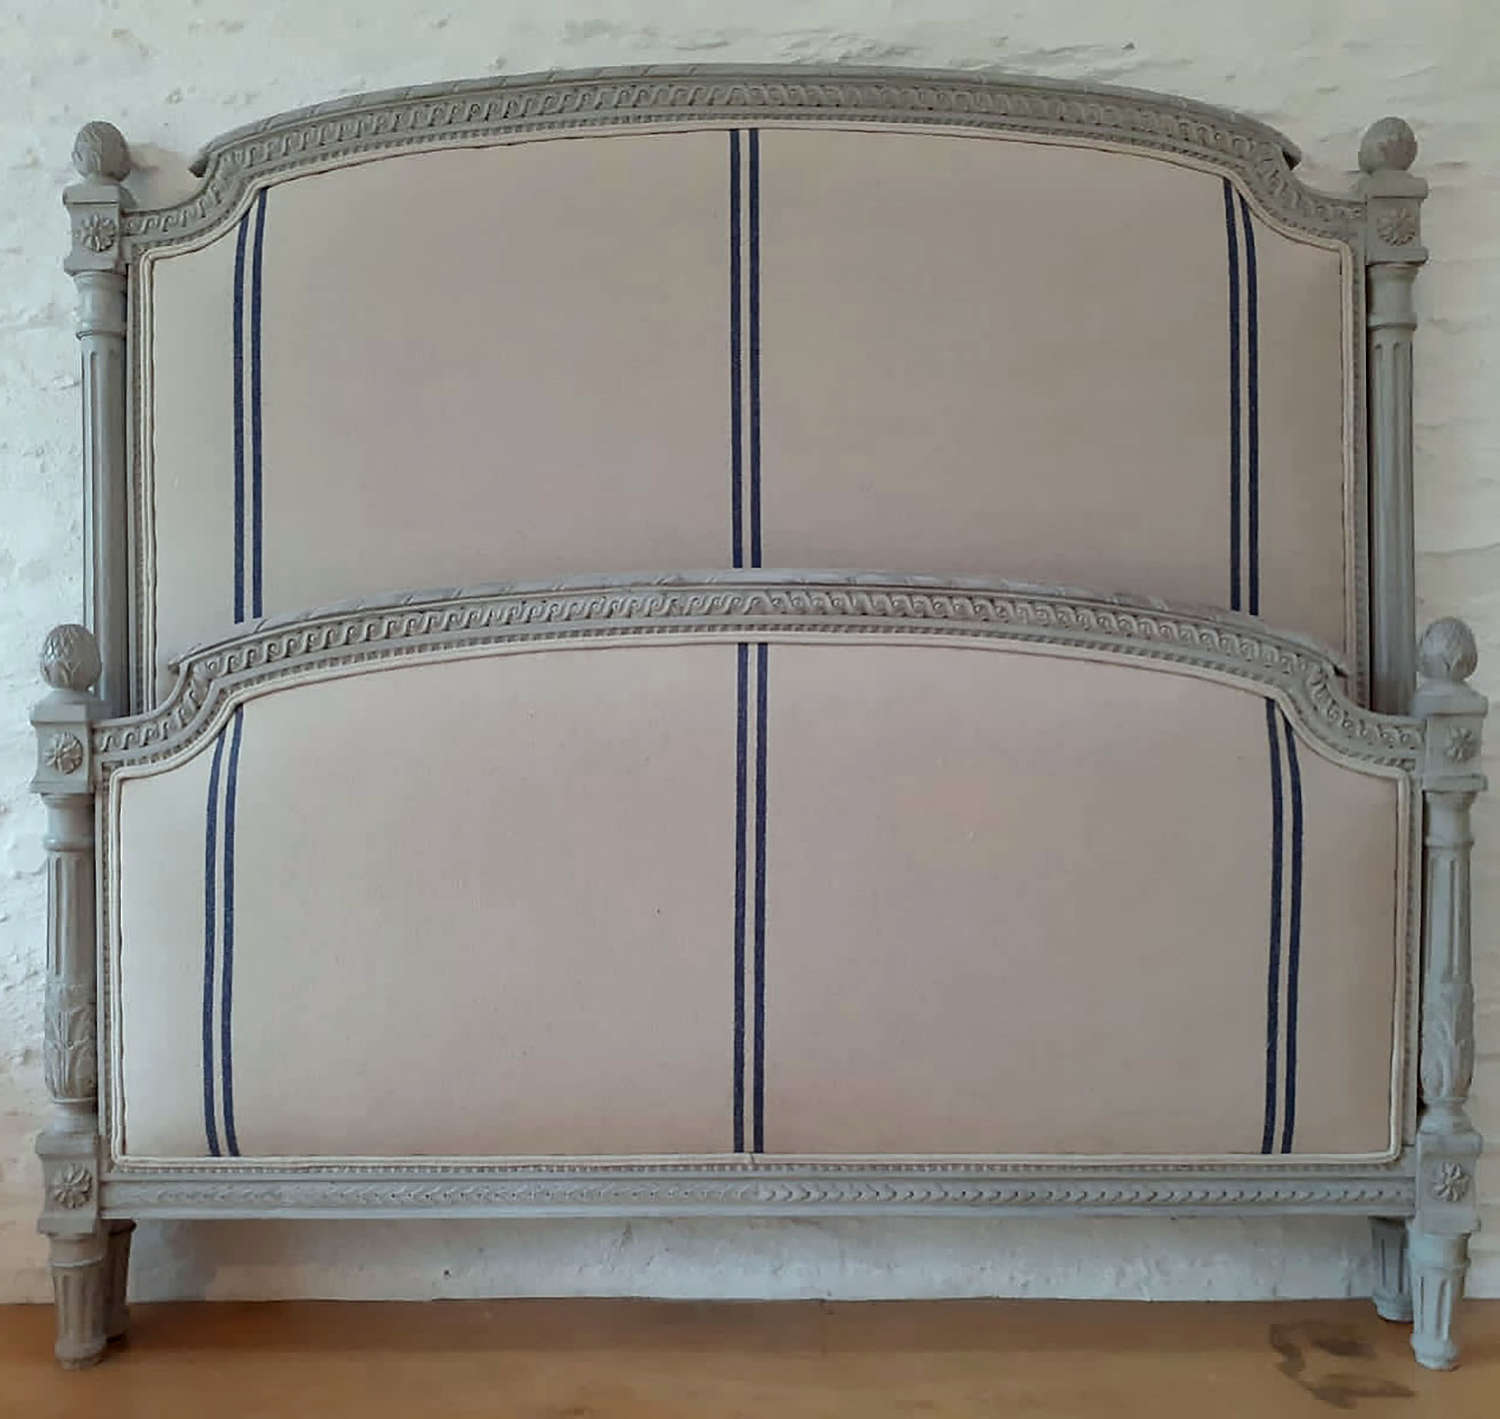 Late 19th Century King size Louis XVI style bedstead